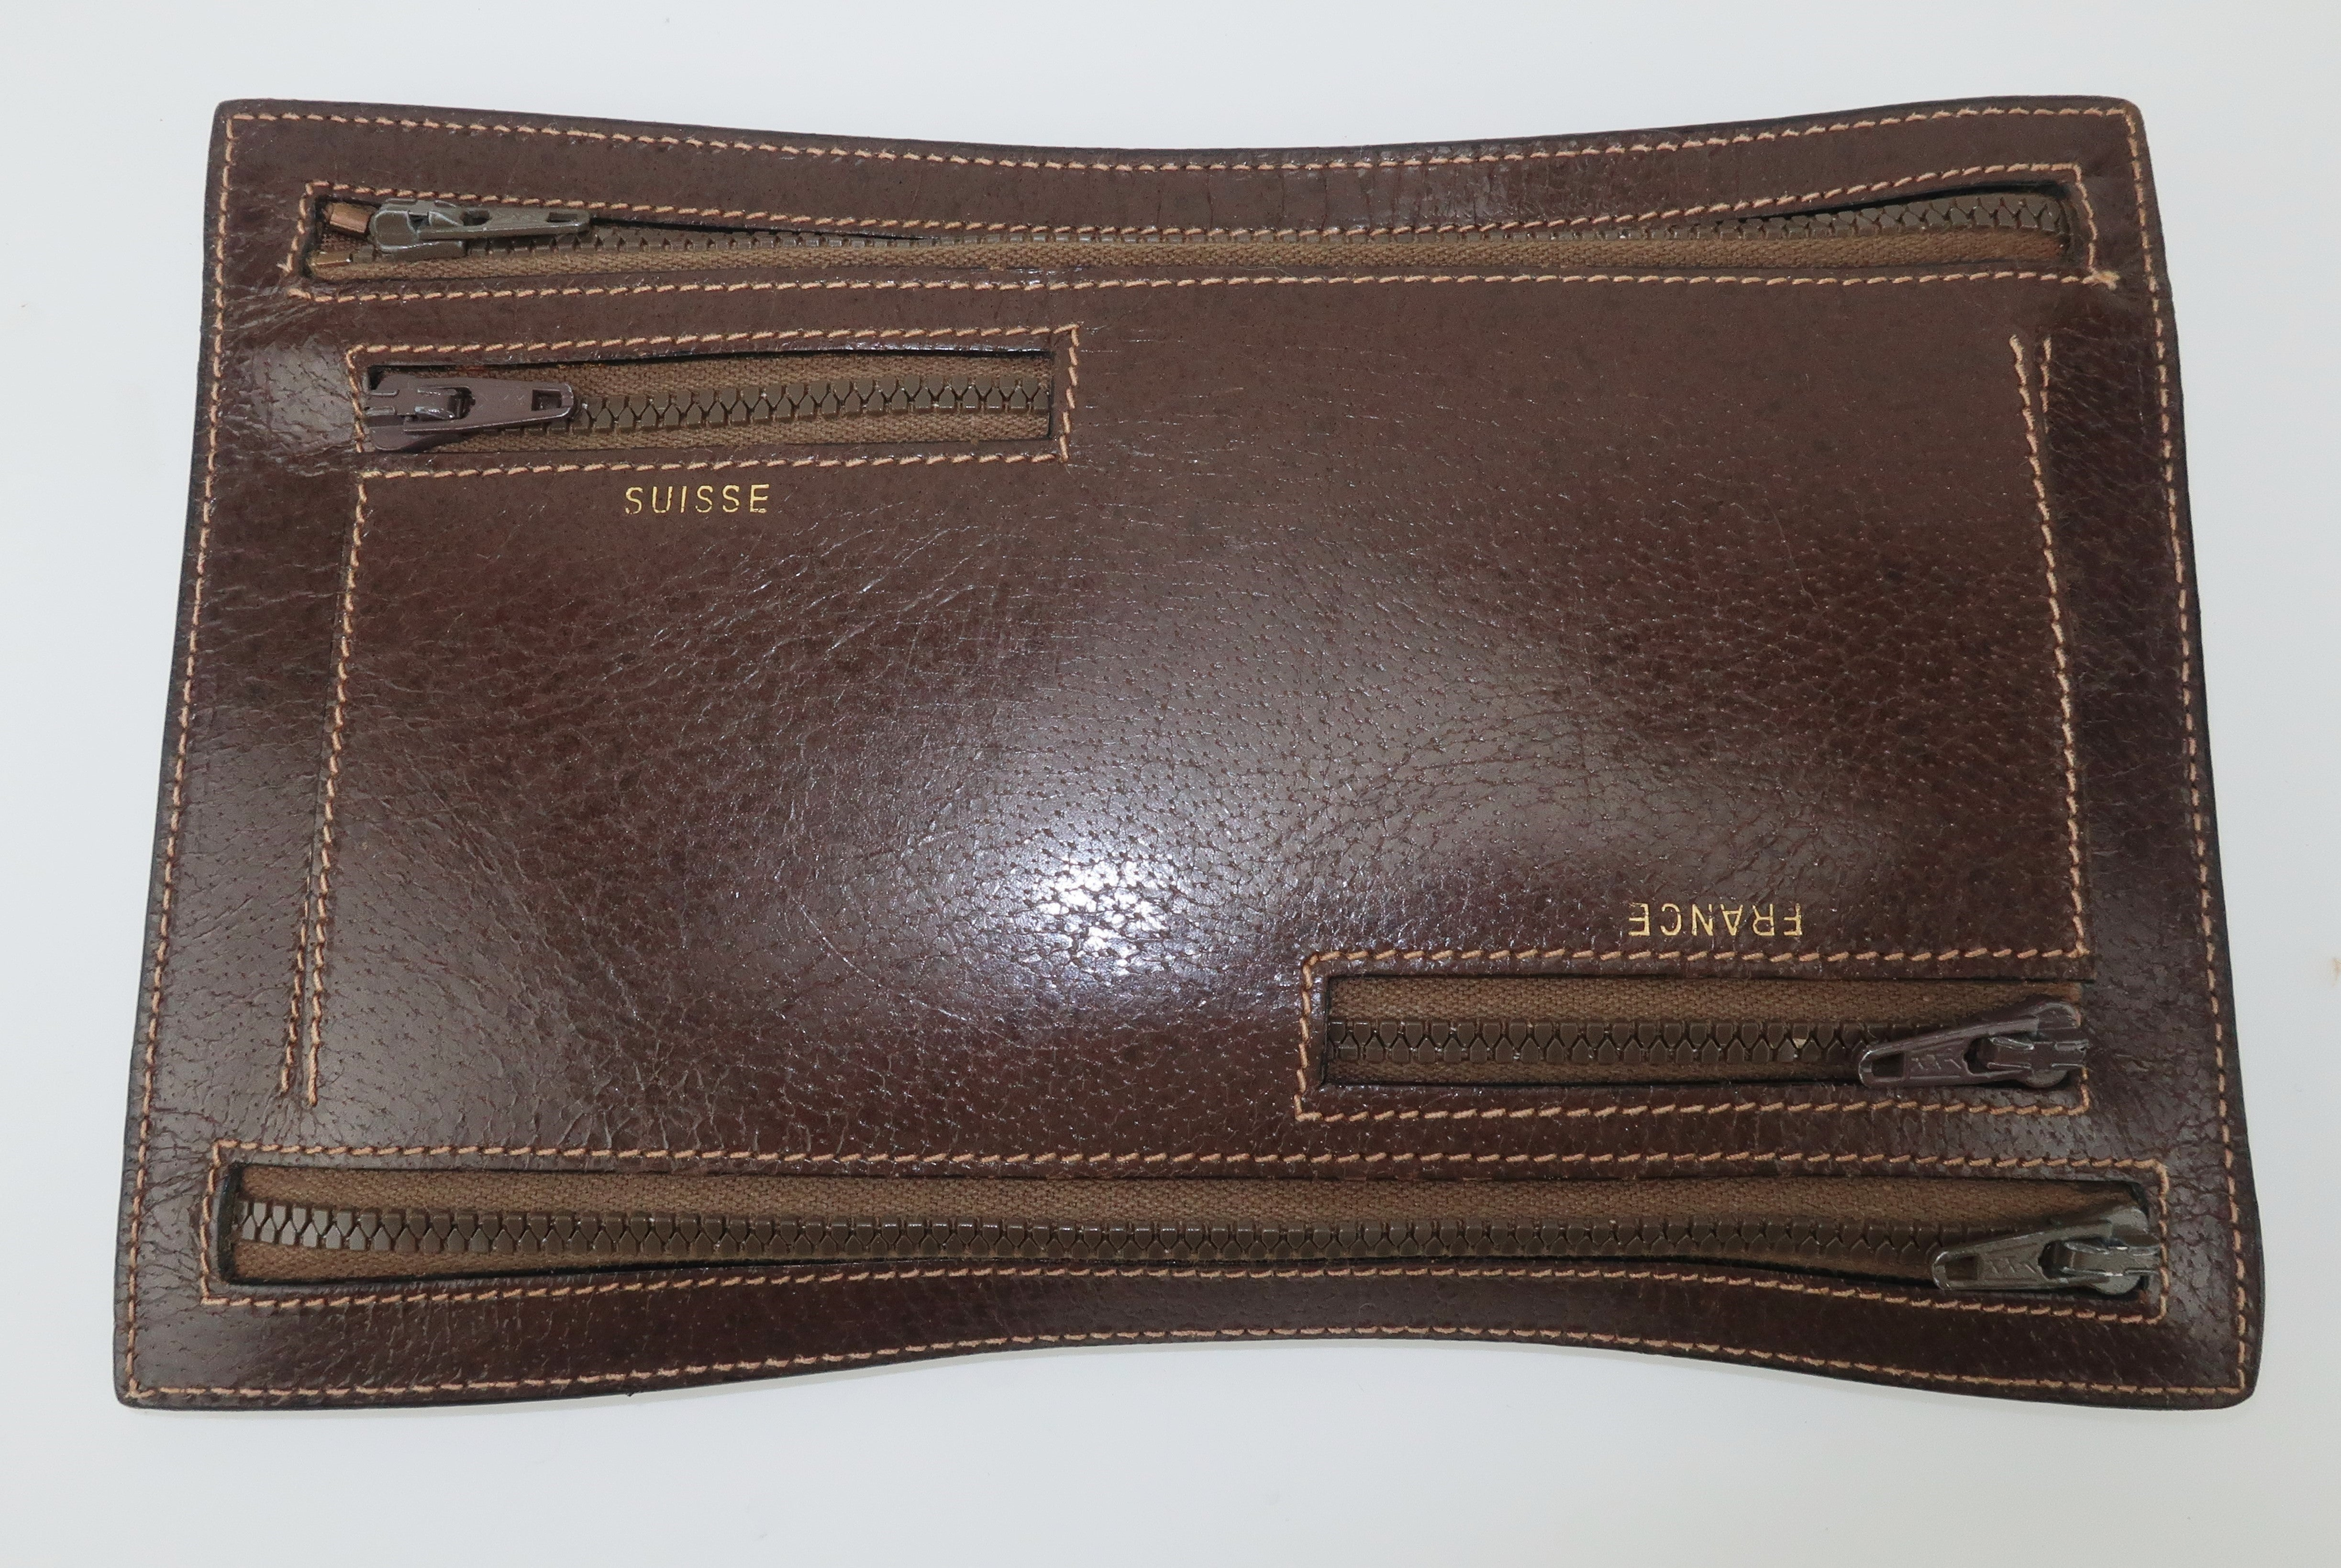 2e44e36dc436 Vintage Gucci Brown Leather Travel Wallet Pouch For Sale at 1stdibs